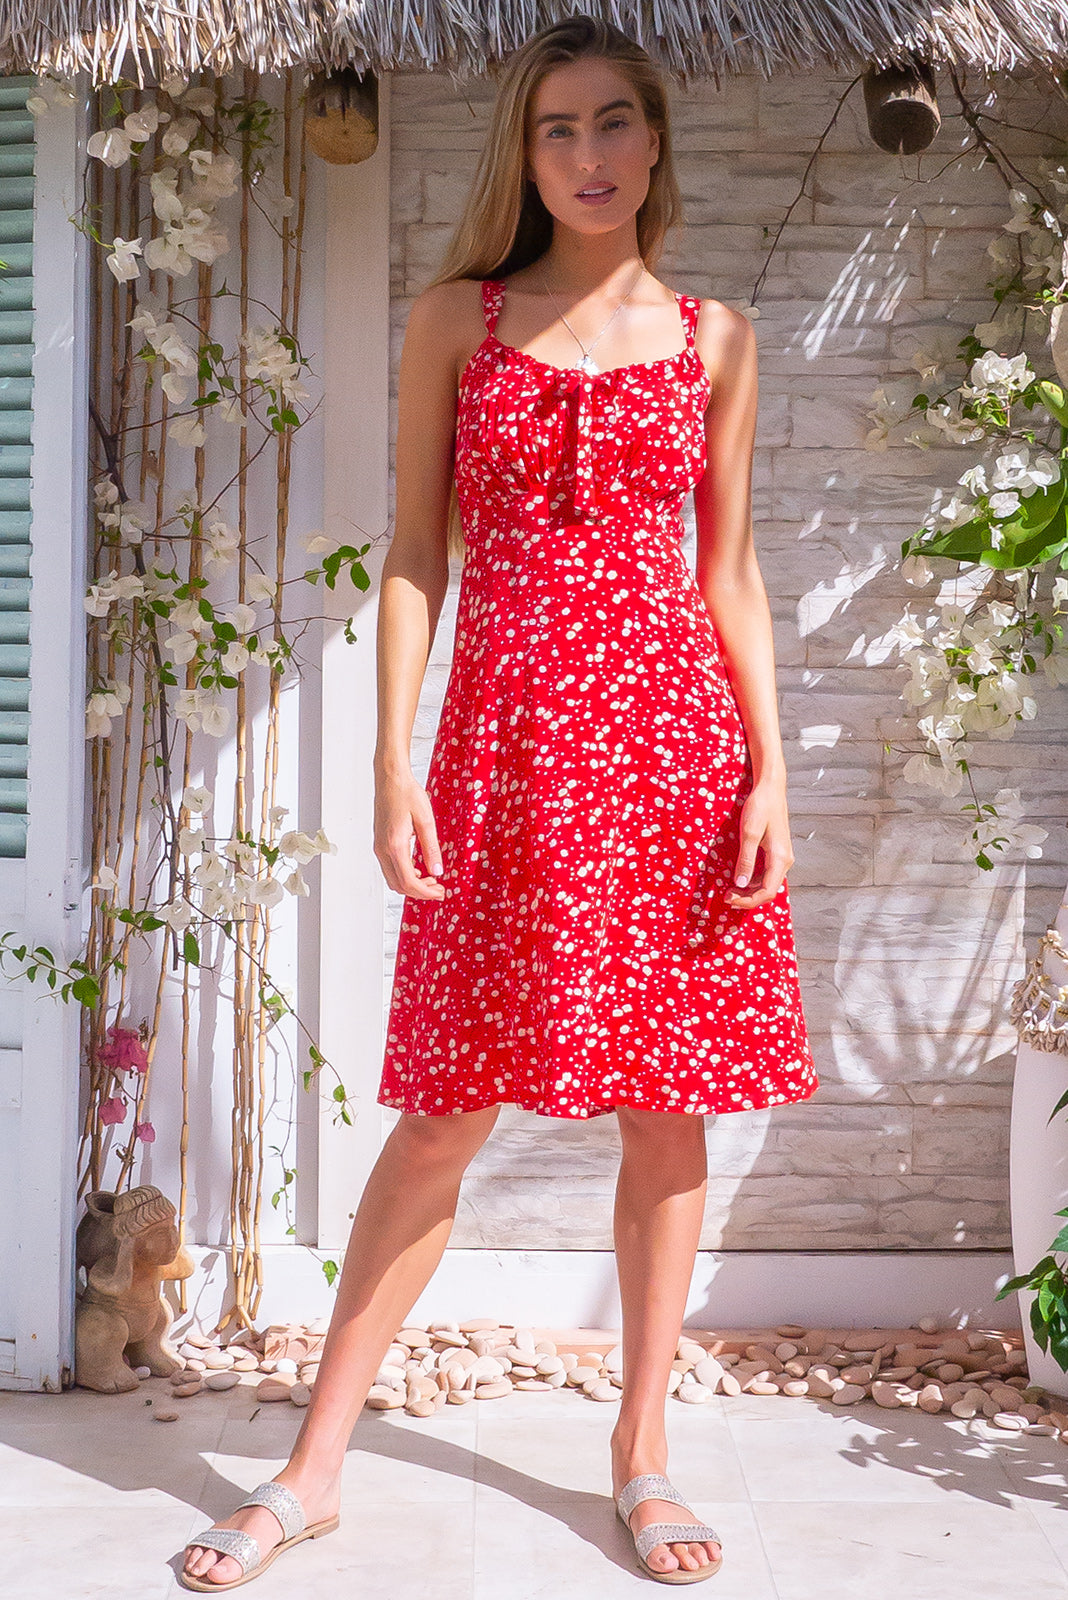 Jay Bay Dandelion Red Dress, bohemian summer style, 100% viscose, elasticated shirred back, sleeveless, adjustable keyhole drawstring design on bust, bright red base with small white dandelion print.